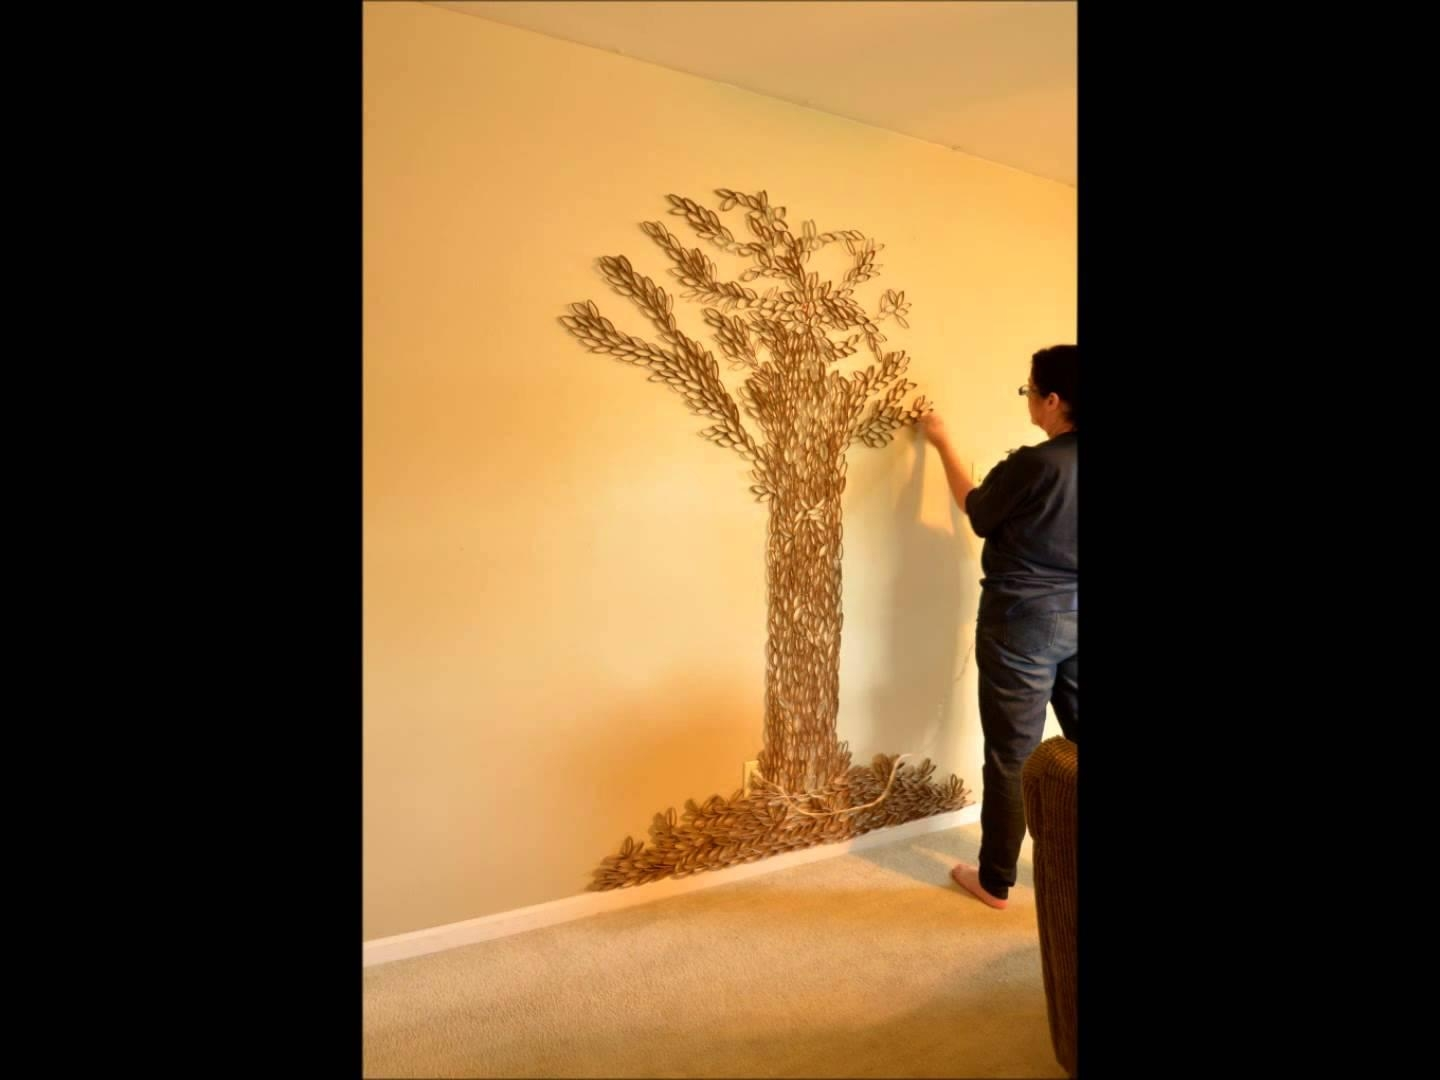 Tree Of Life Wall Art – 7Ft Paper Roll Sculpture In 1 Minute With Regard To Tree Wall Art Sculpture (View 13 of 20)